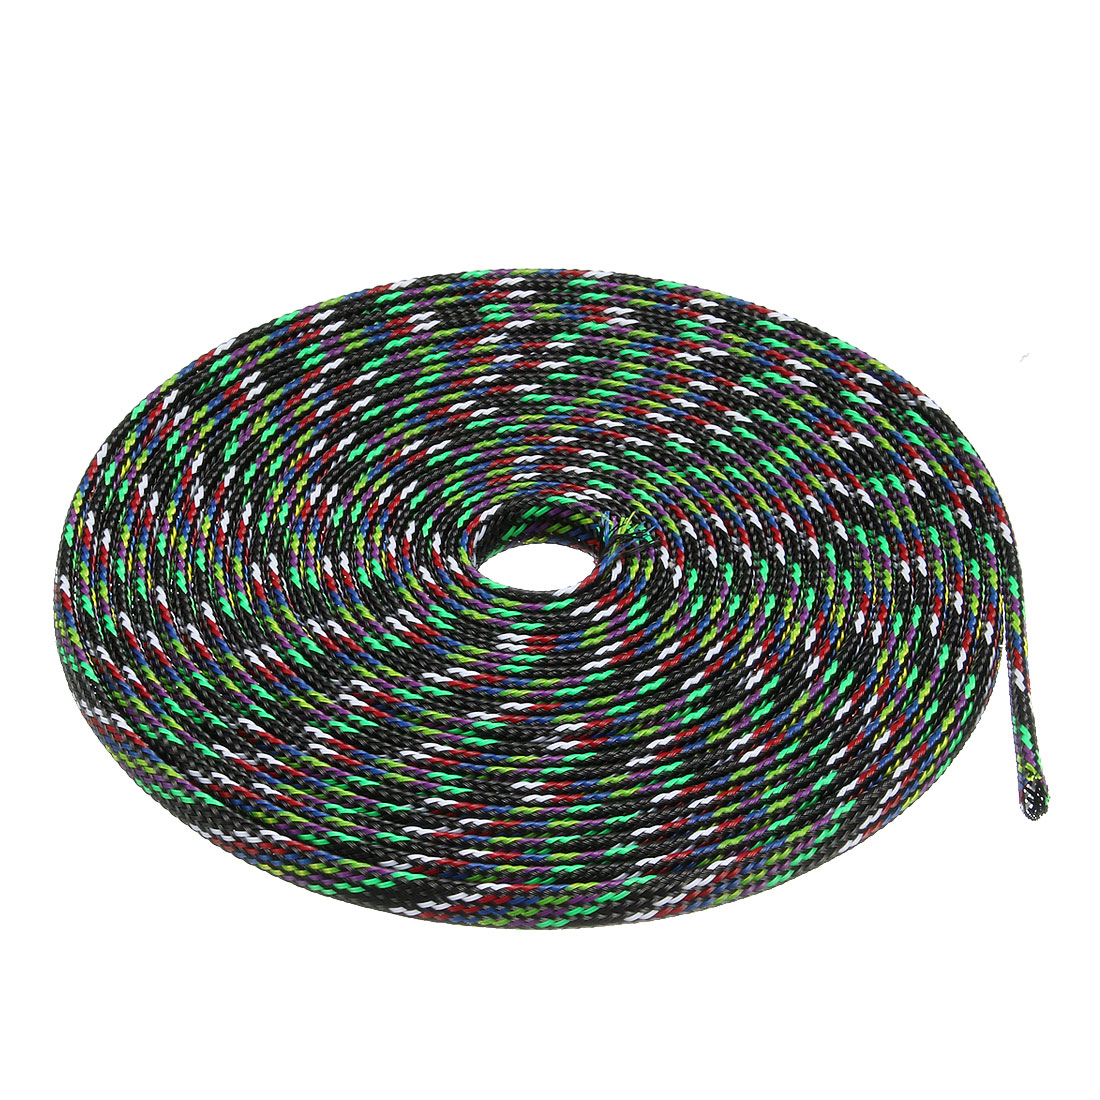 6mm PET Cable Wire Wrap Expandable Braided Sleeving Multicolor 5M Length